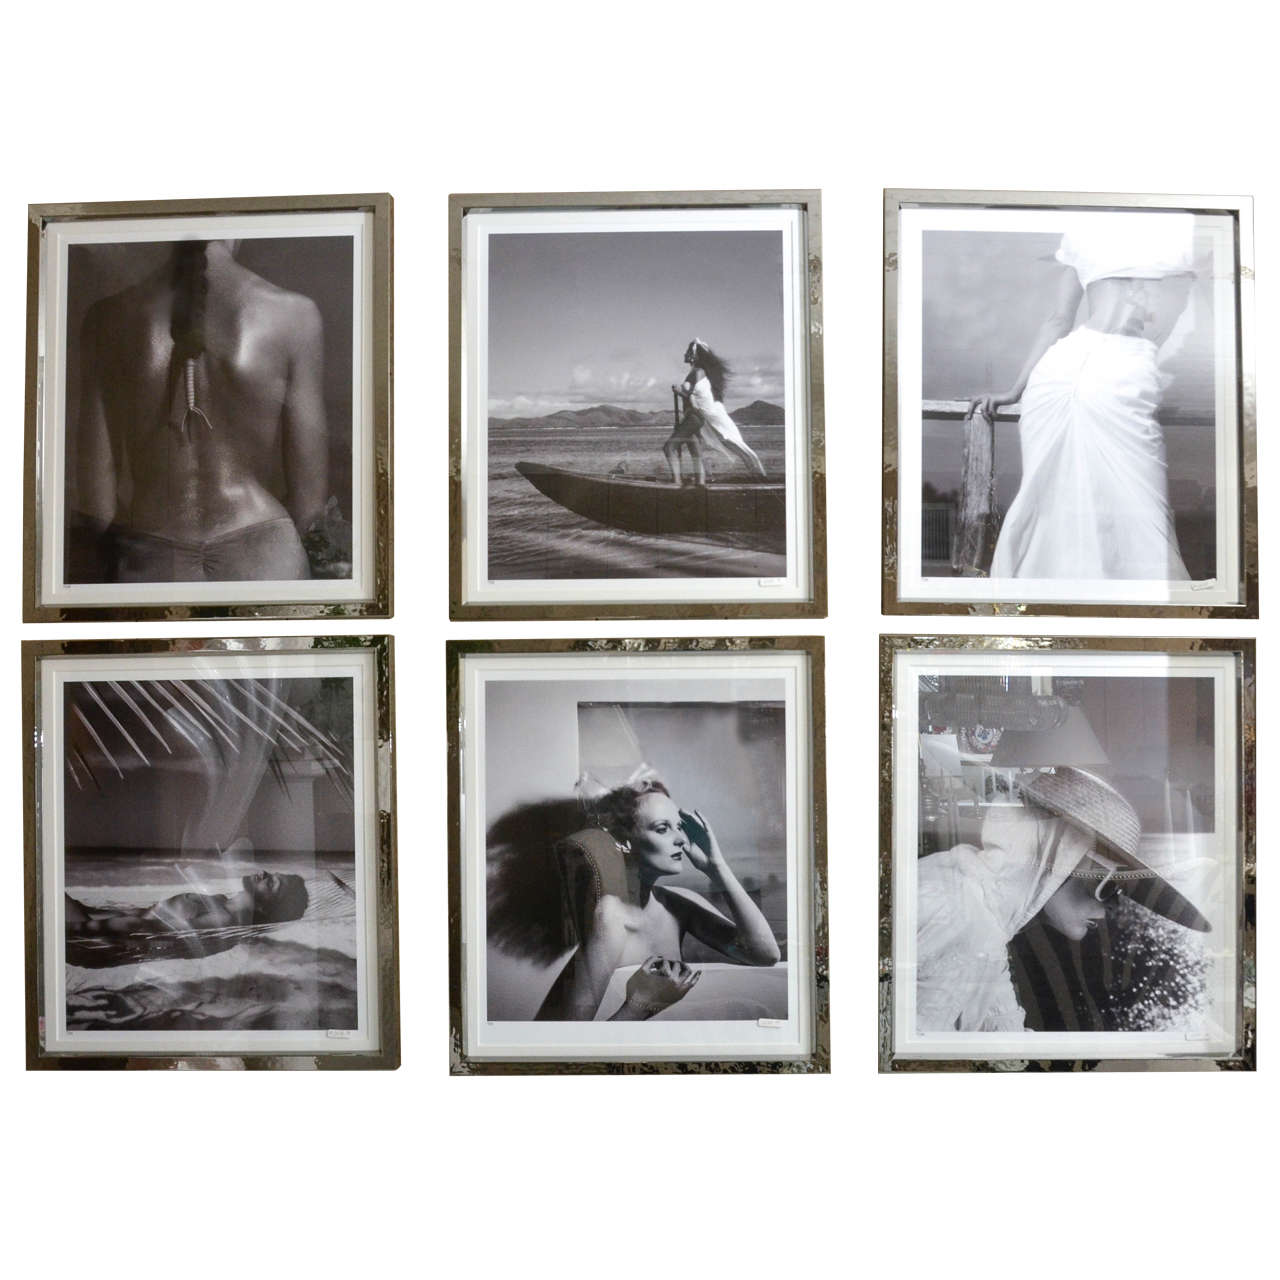 Fashion Photographs by Willie Christie in Silvered Metal Frames 1